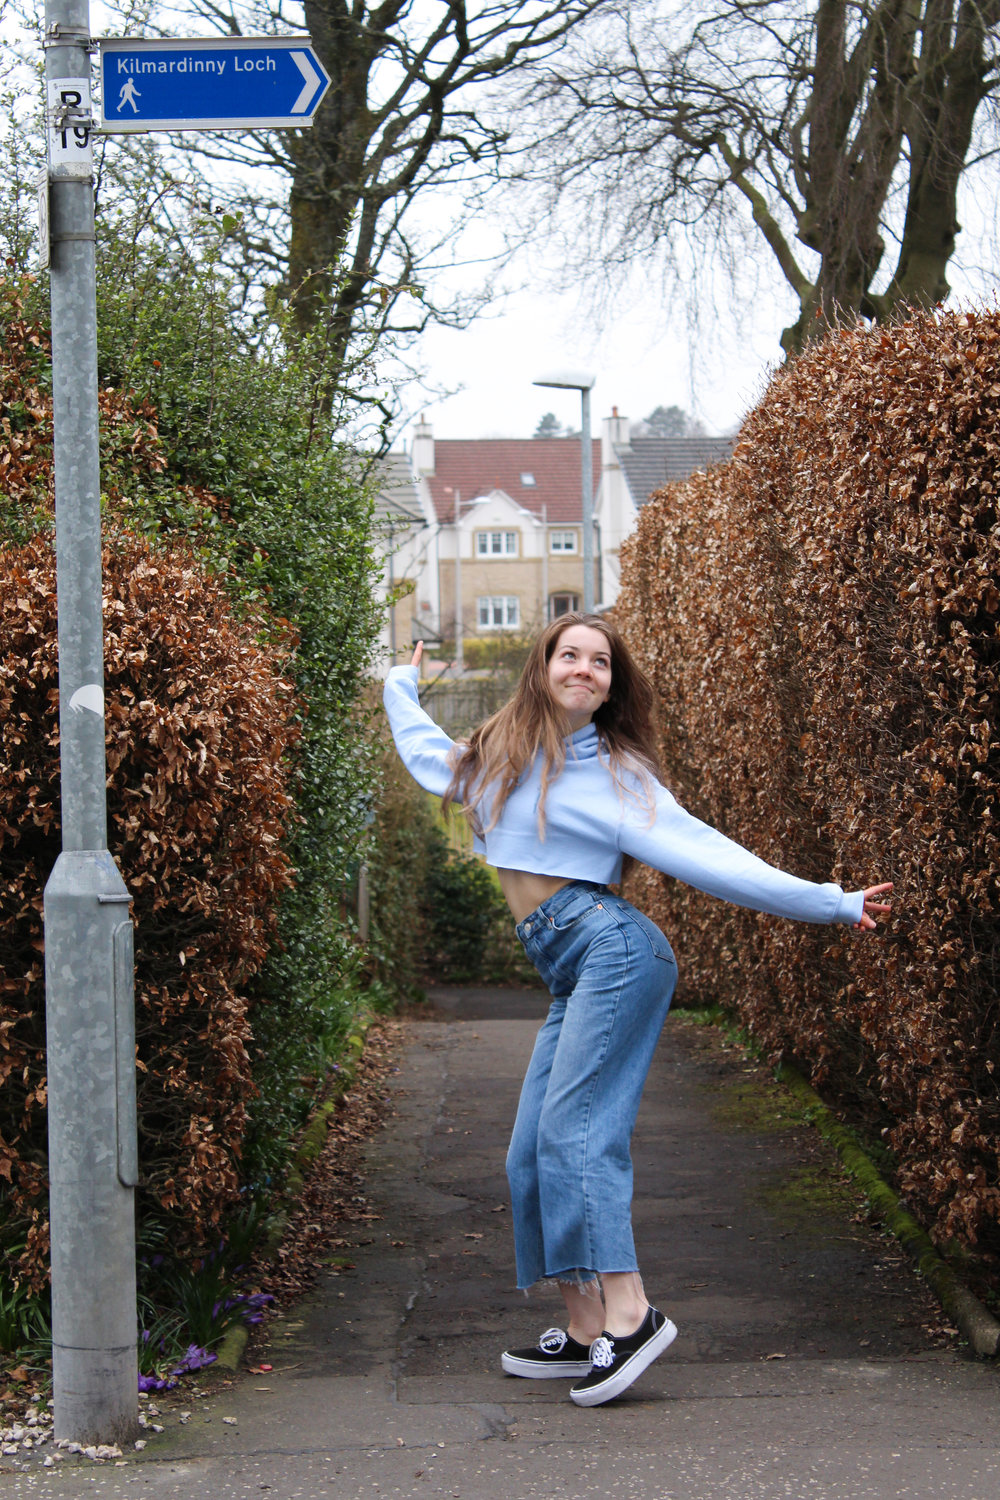 dancing in a lane